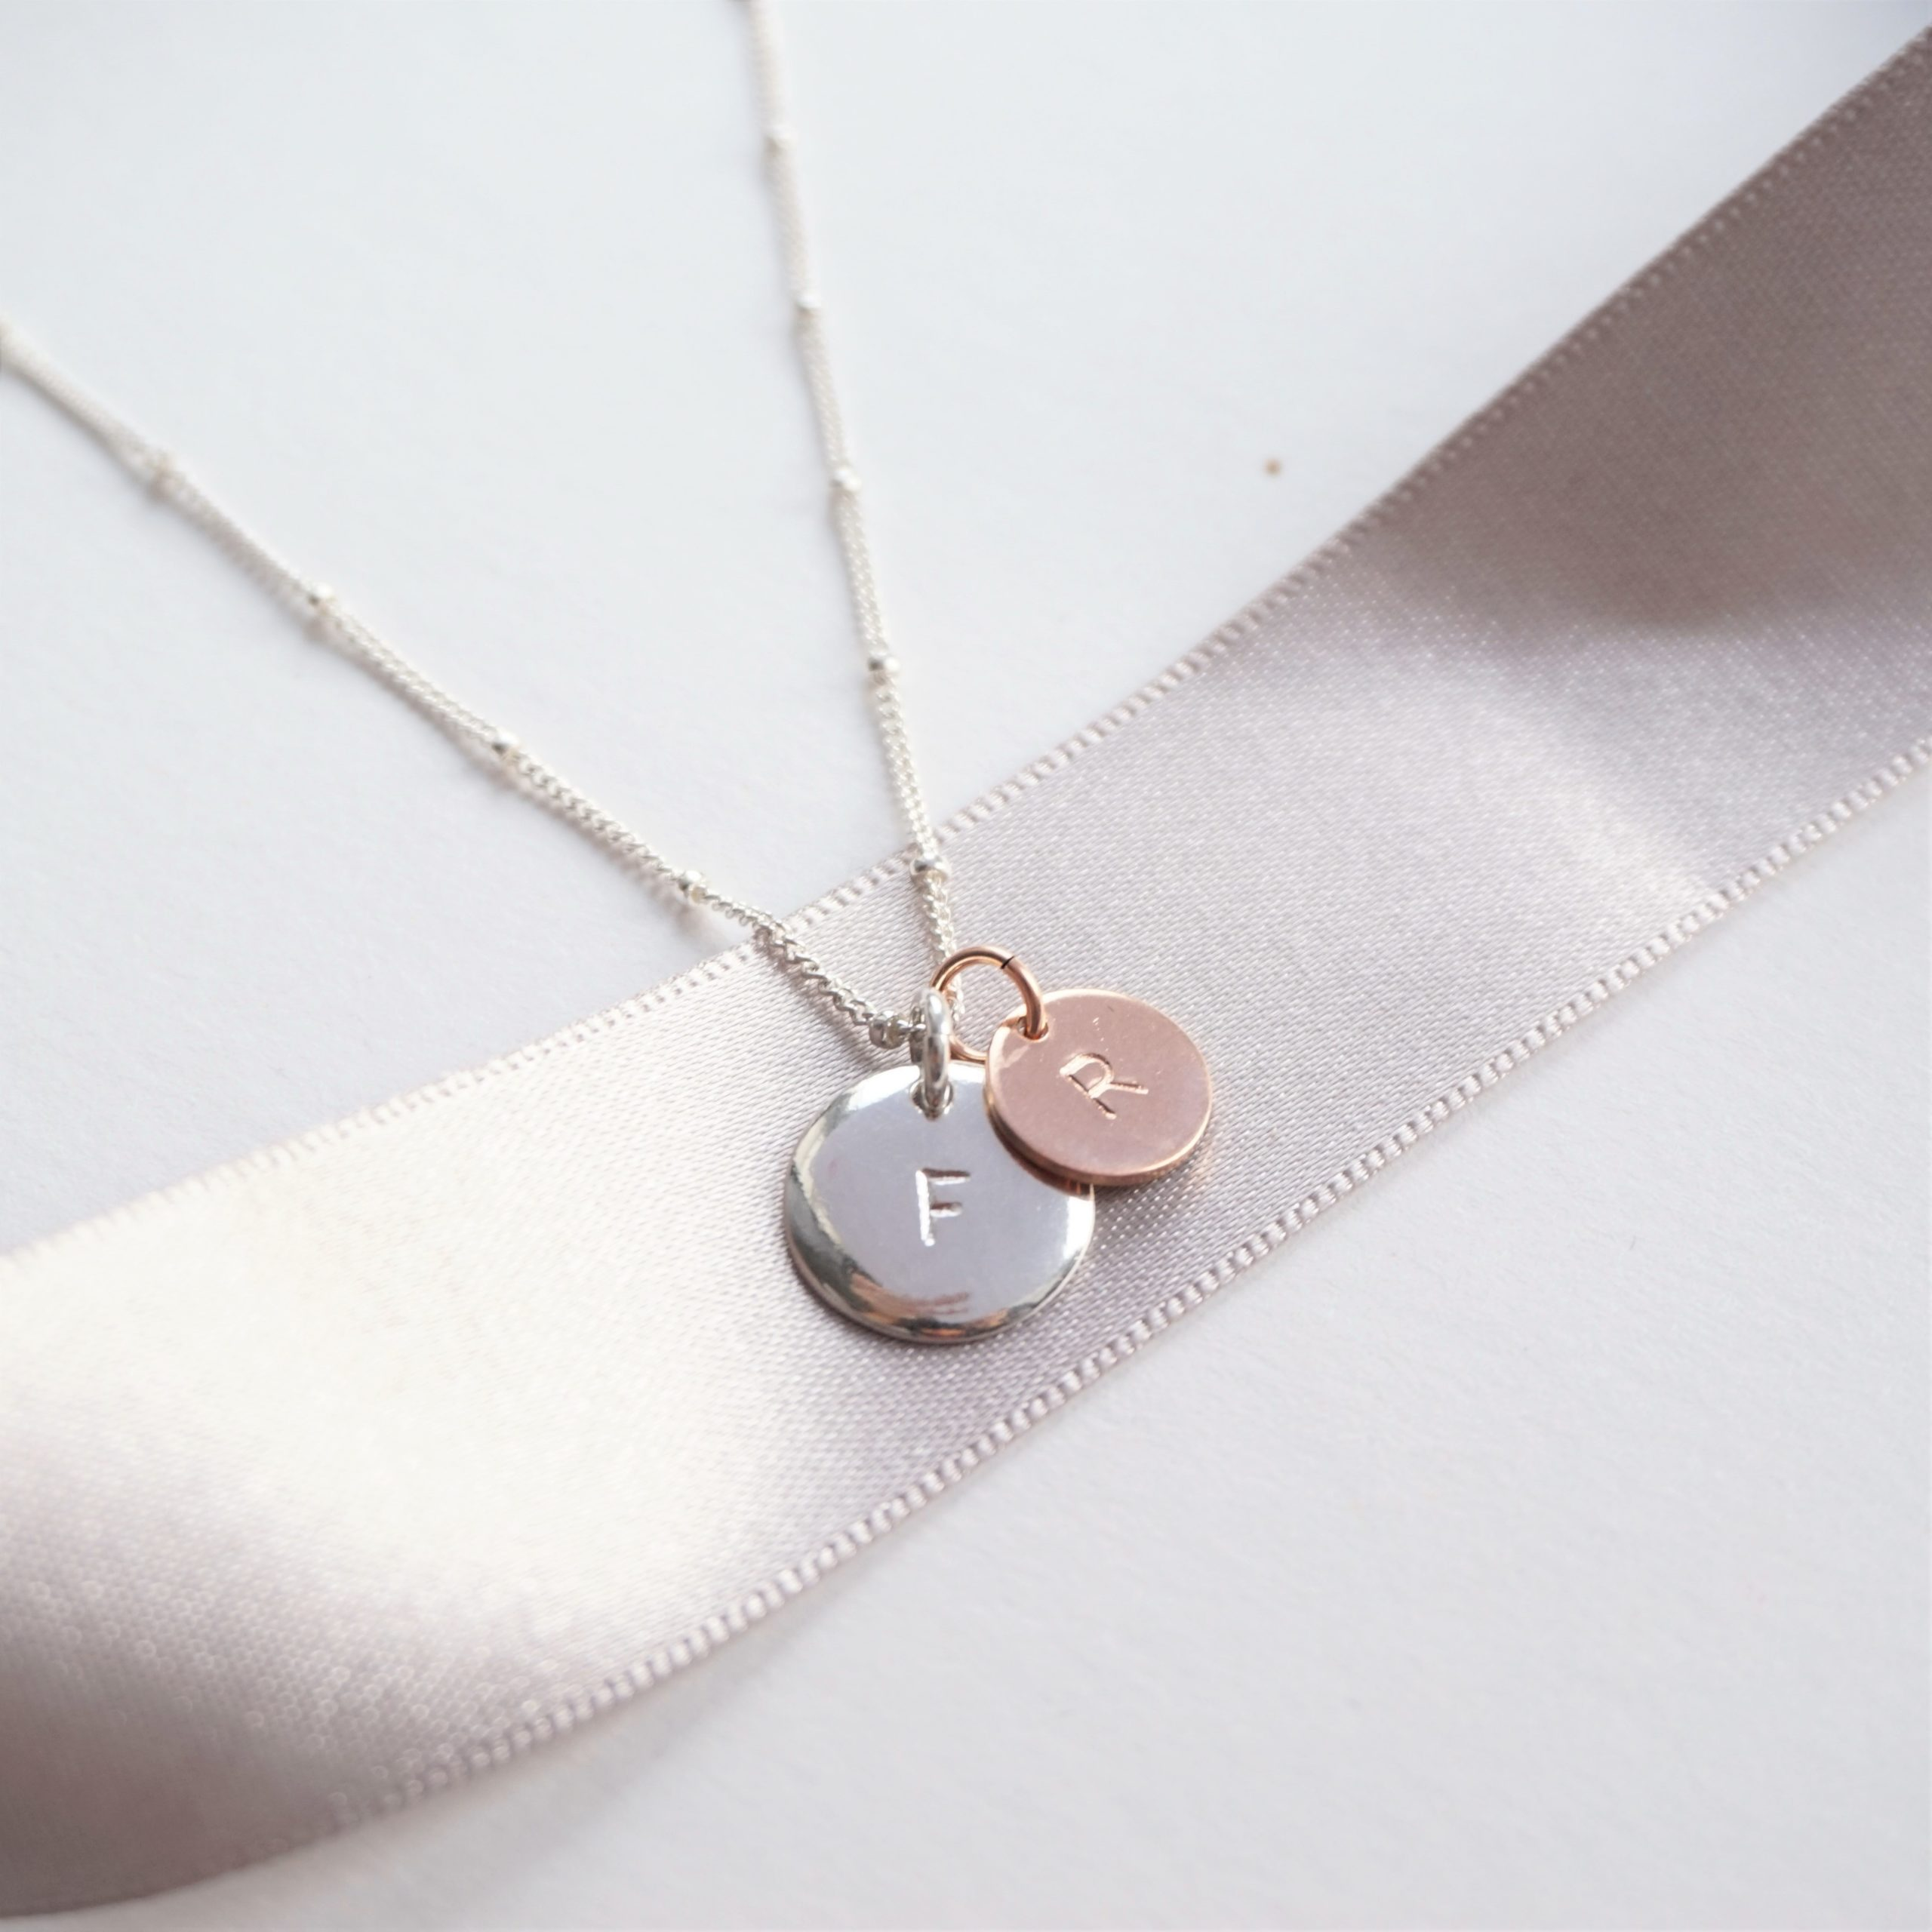 sterling silver necklace with stamped silver and rose gold discs